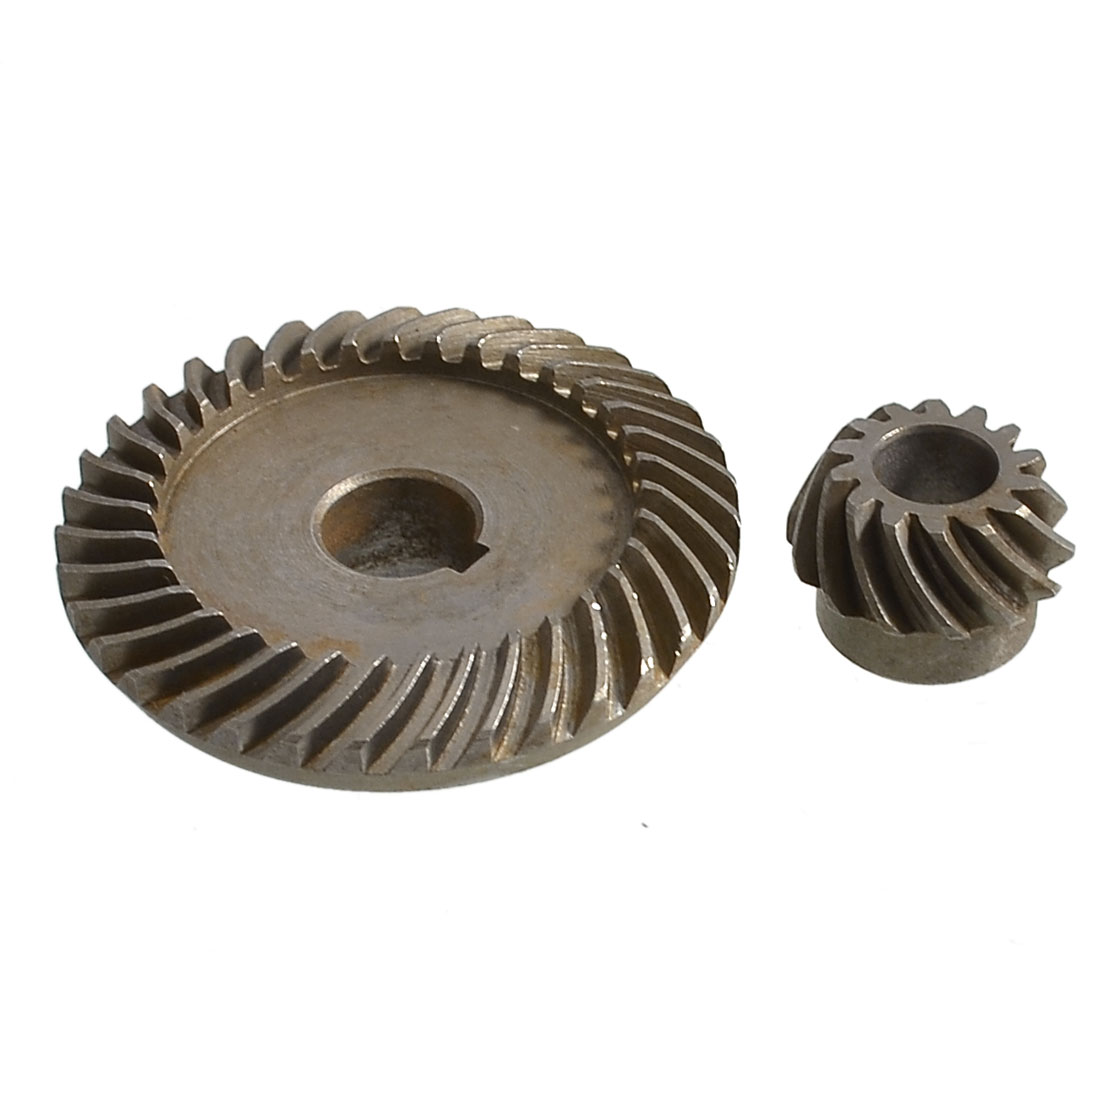 35-teeth Gear 14 Tooth Spiral Bevel Pinion Set for 100 Angle Grinder